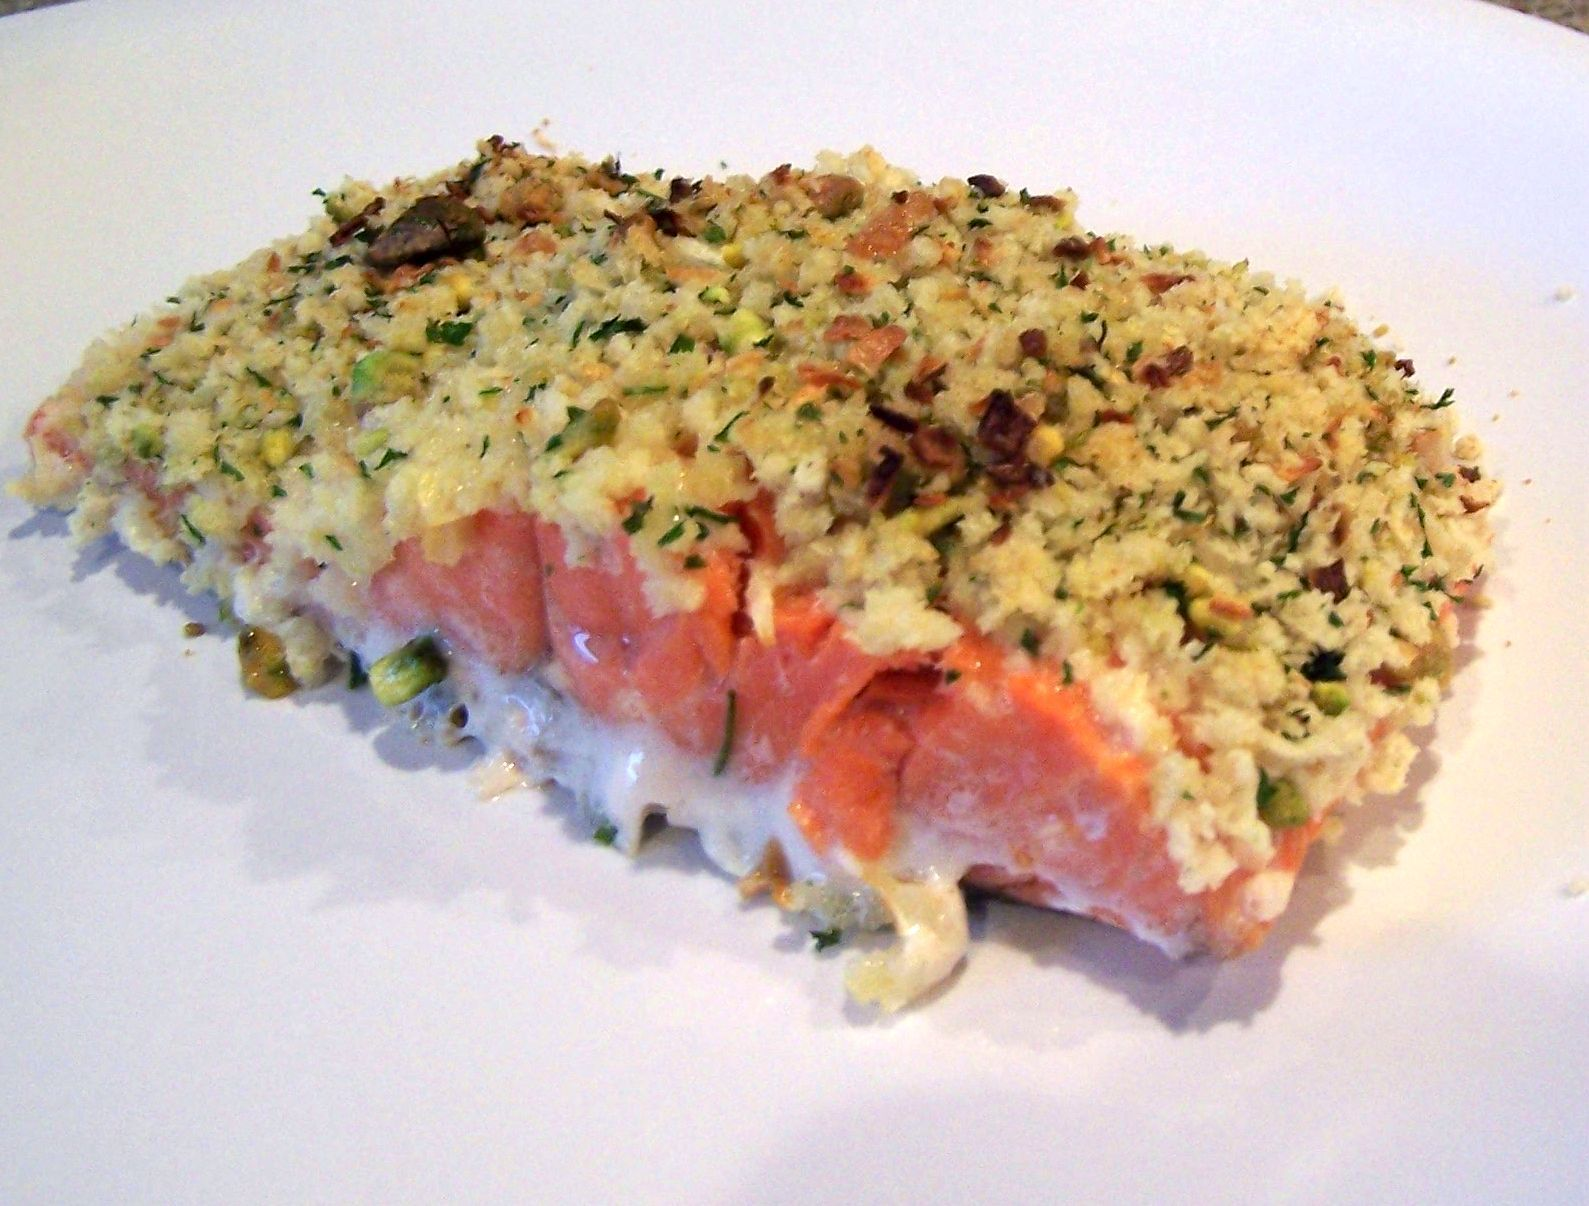 Pistachio-Encrusted Salmon With Edamame Mash Recipes — Dishmaps